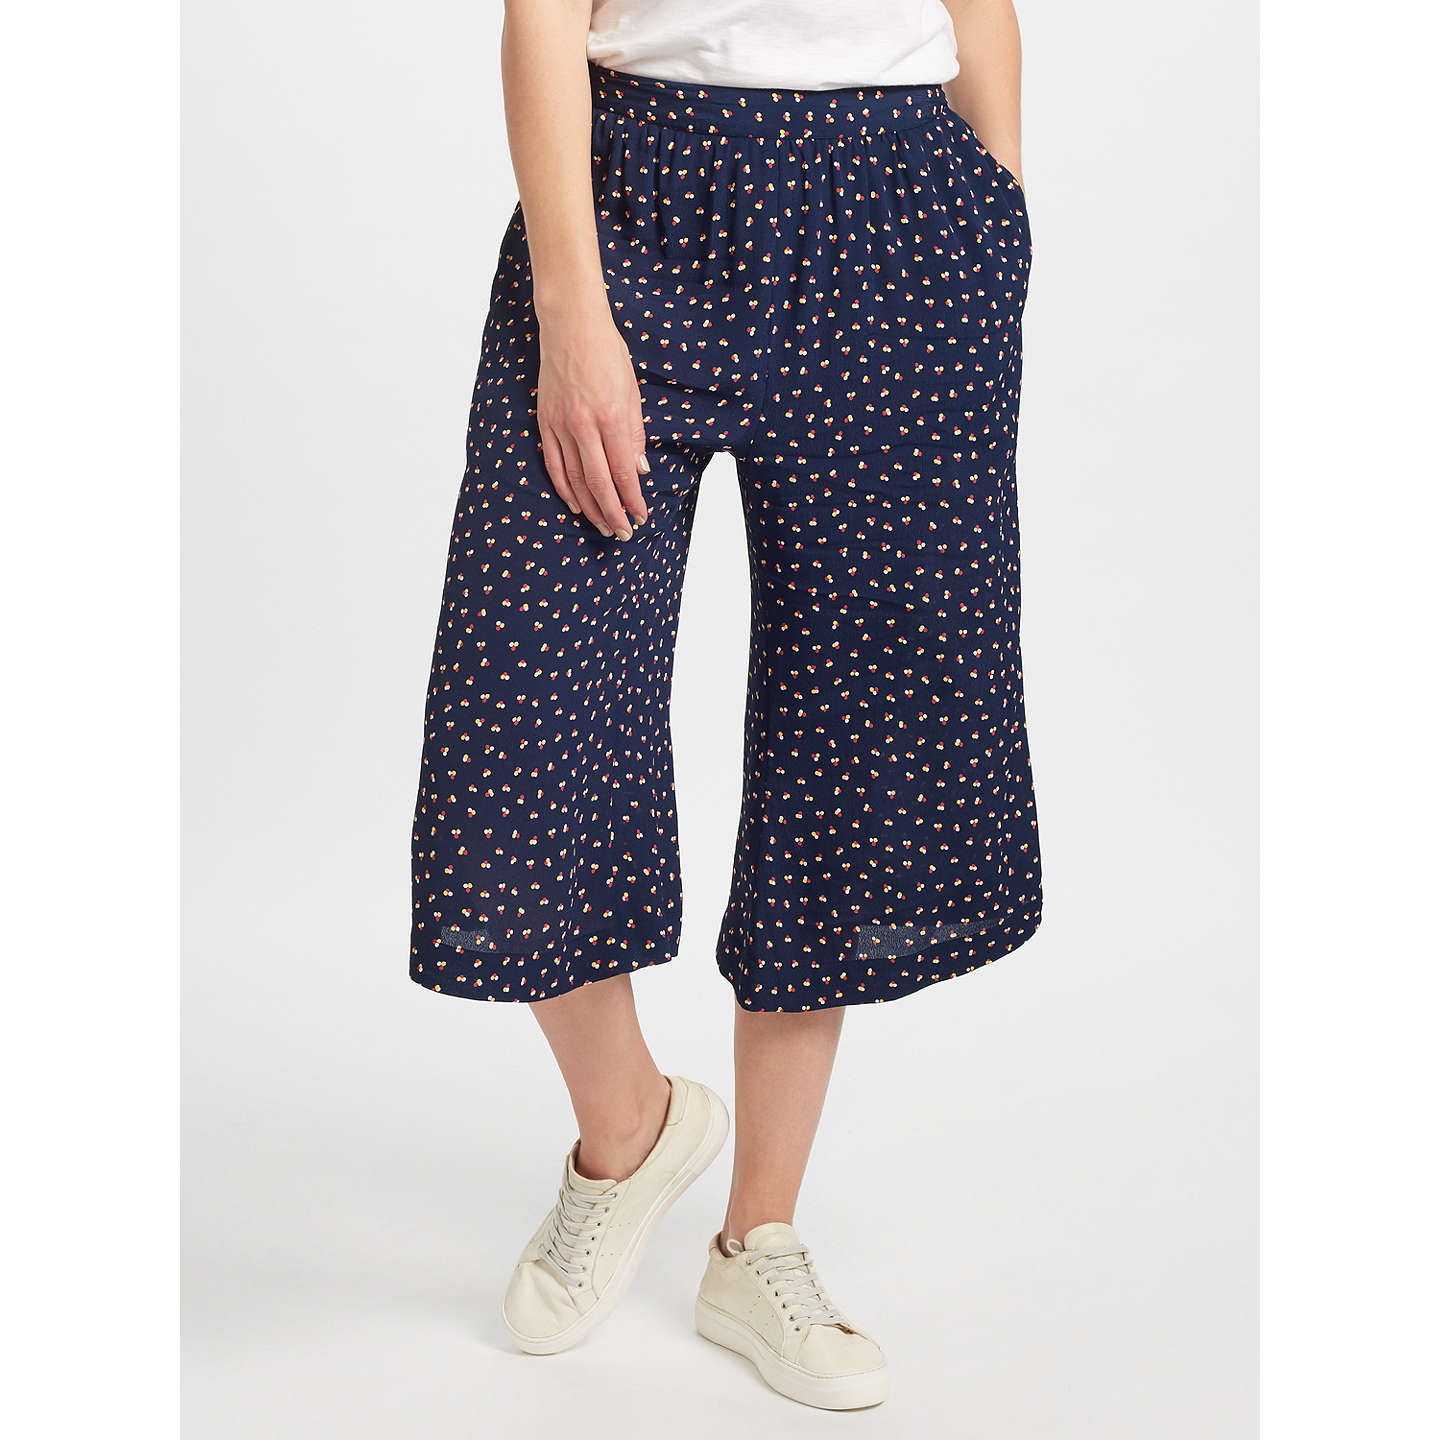 BuyCollection WEEKEND by John Lewis Dot Print Culottes, Navy, 8 Online at johnlewis.com